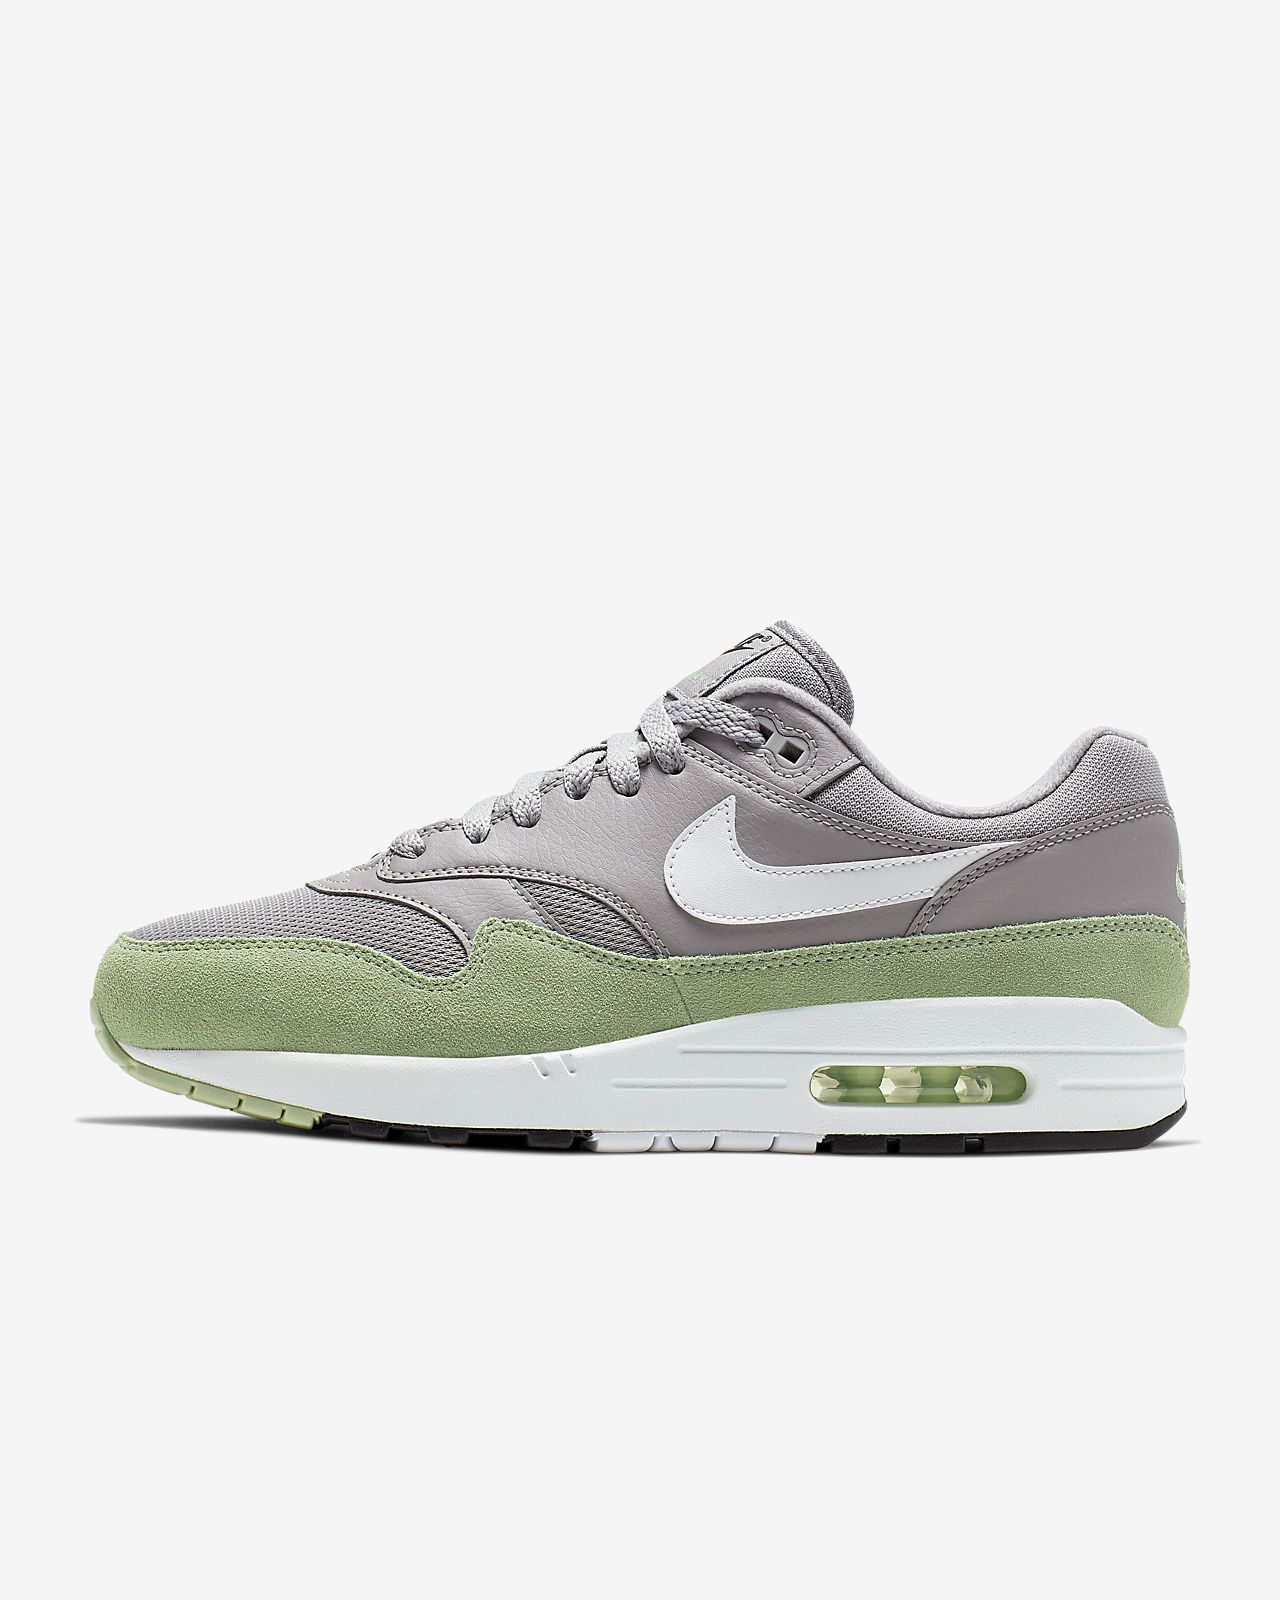 30bde503c4 Nike Air Max 1 Men's Shoe